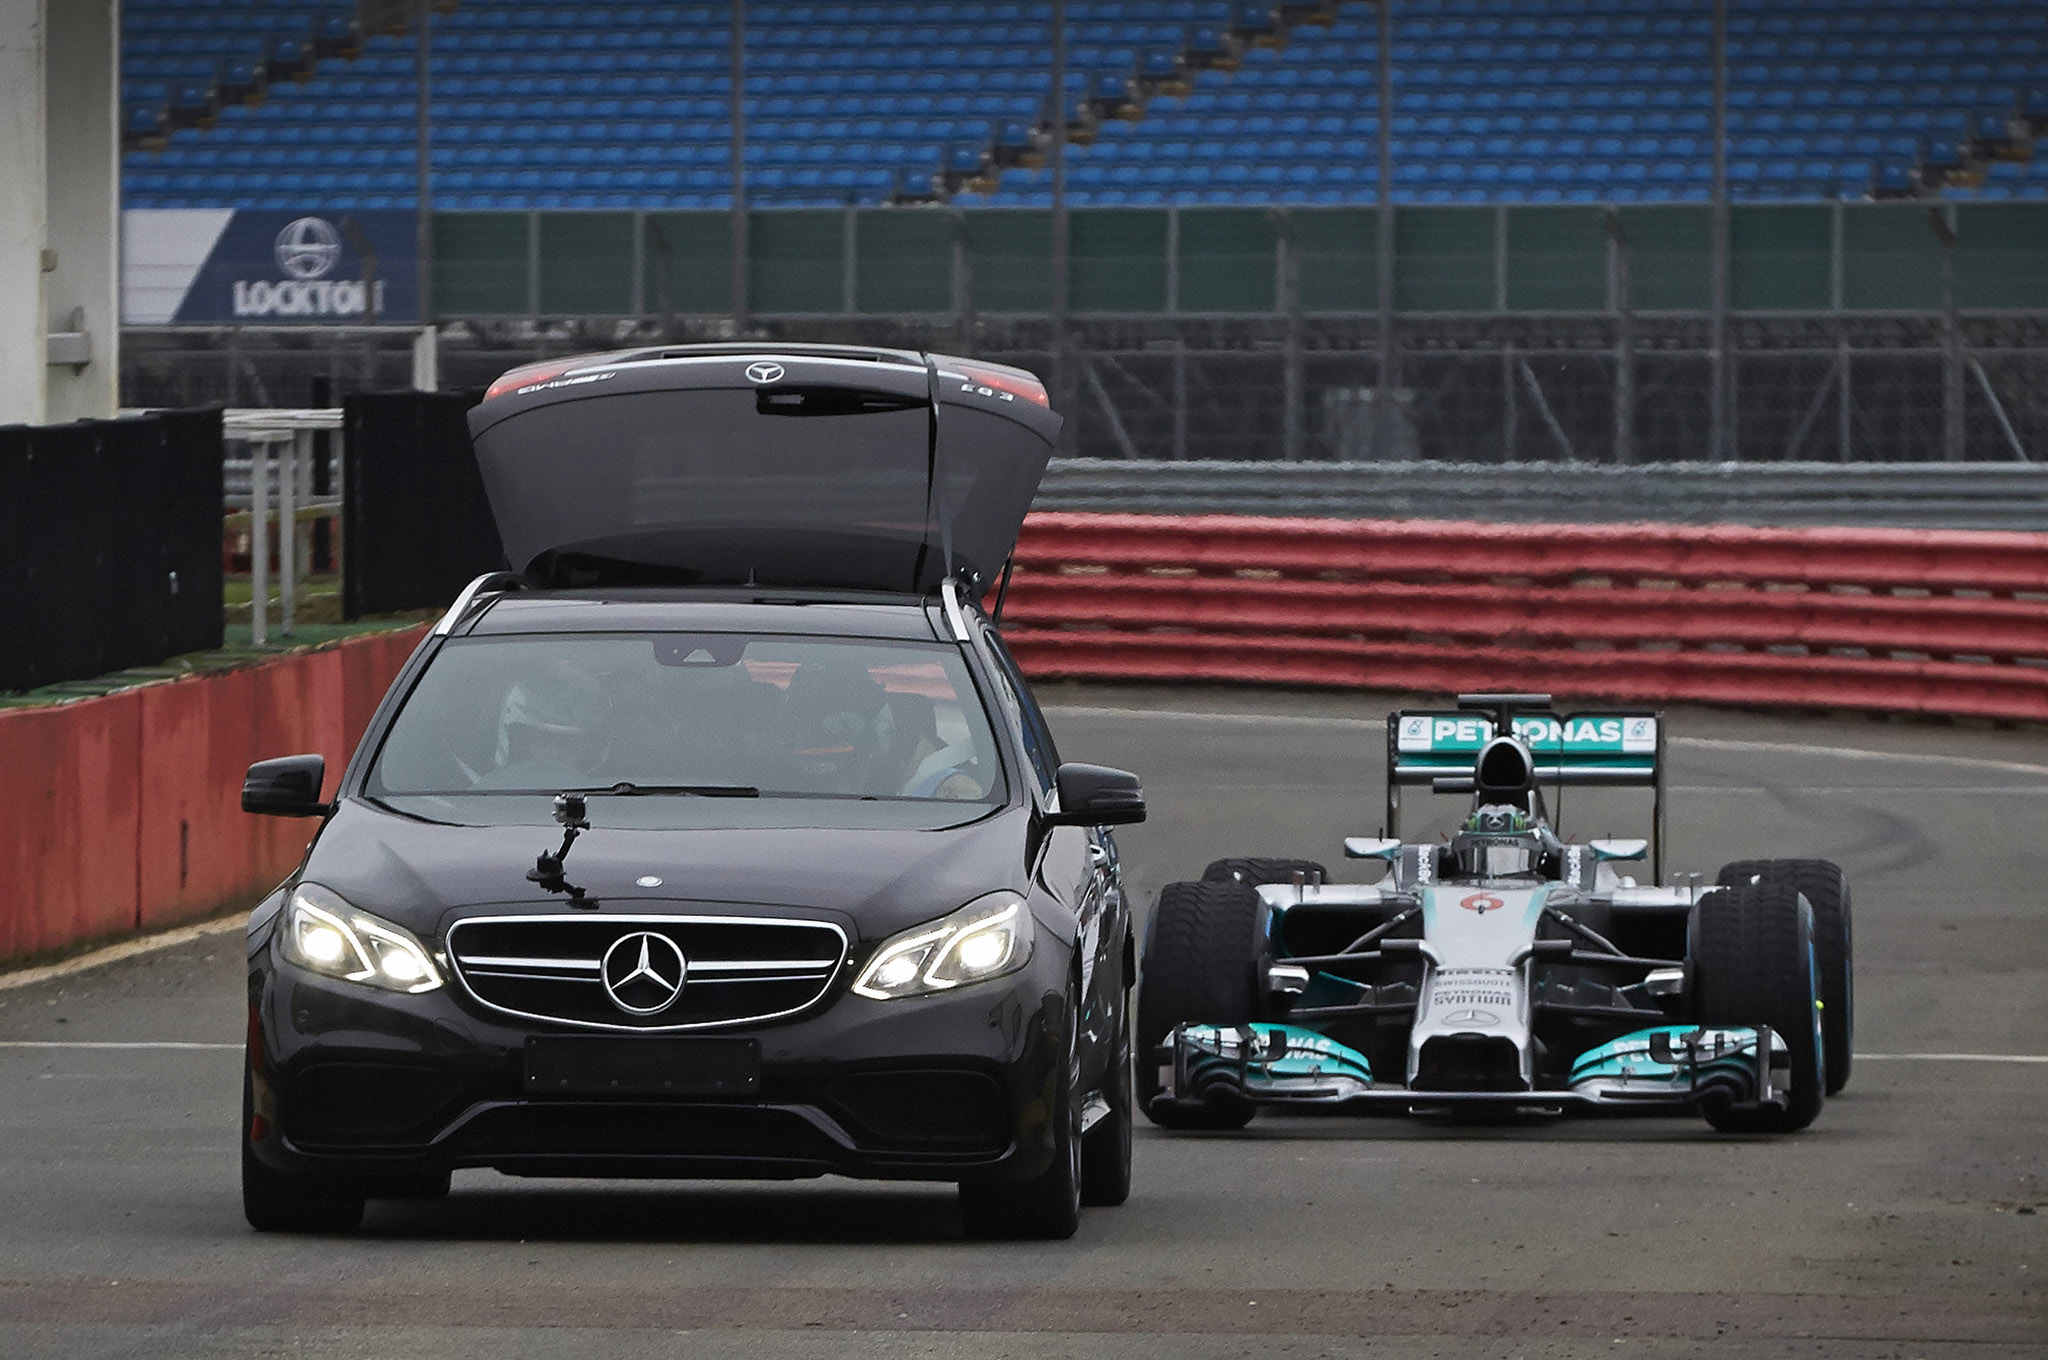 Mercedes Benz F1 360 Degree Video